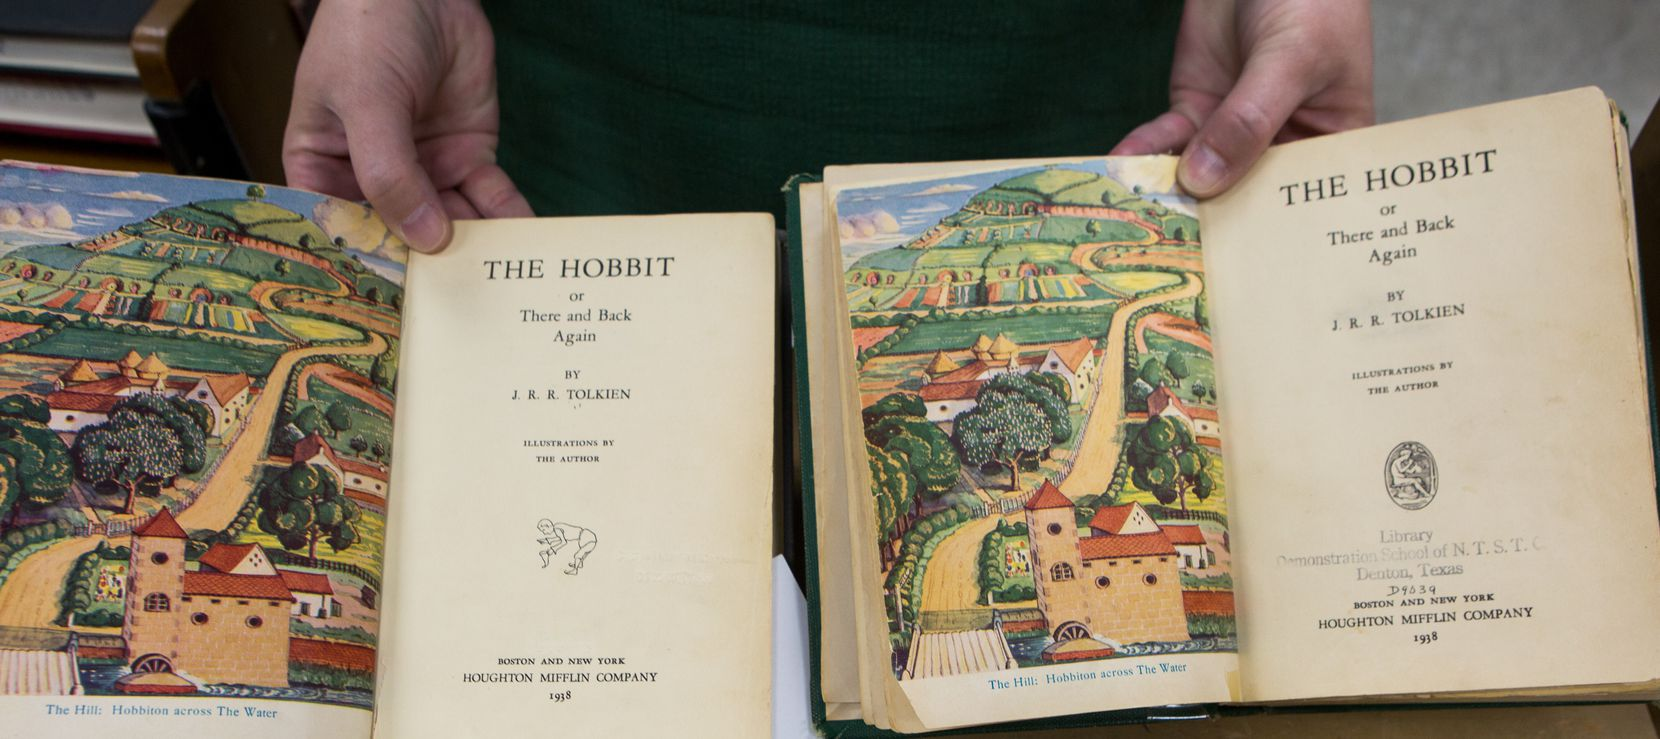 The returned first edition 1938 copy of The Hobbit by J.R.R. Tolkien (left) is also a first round print edition adding to it's value. Unique identifiers such as the hobbit illustration on the title page mark distinguish it from the first edition copy on the right. Photo taken Thursday, April 11, 2019 at the UNT library annex in Denton, Texas.